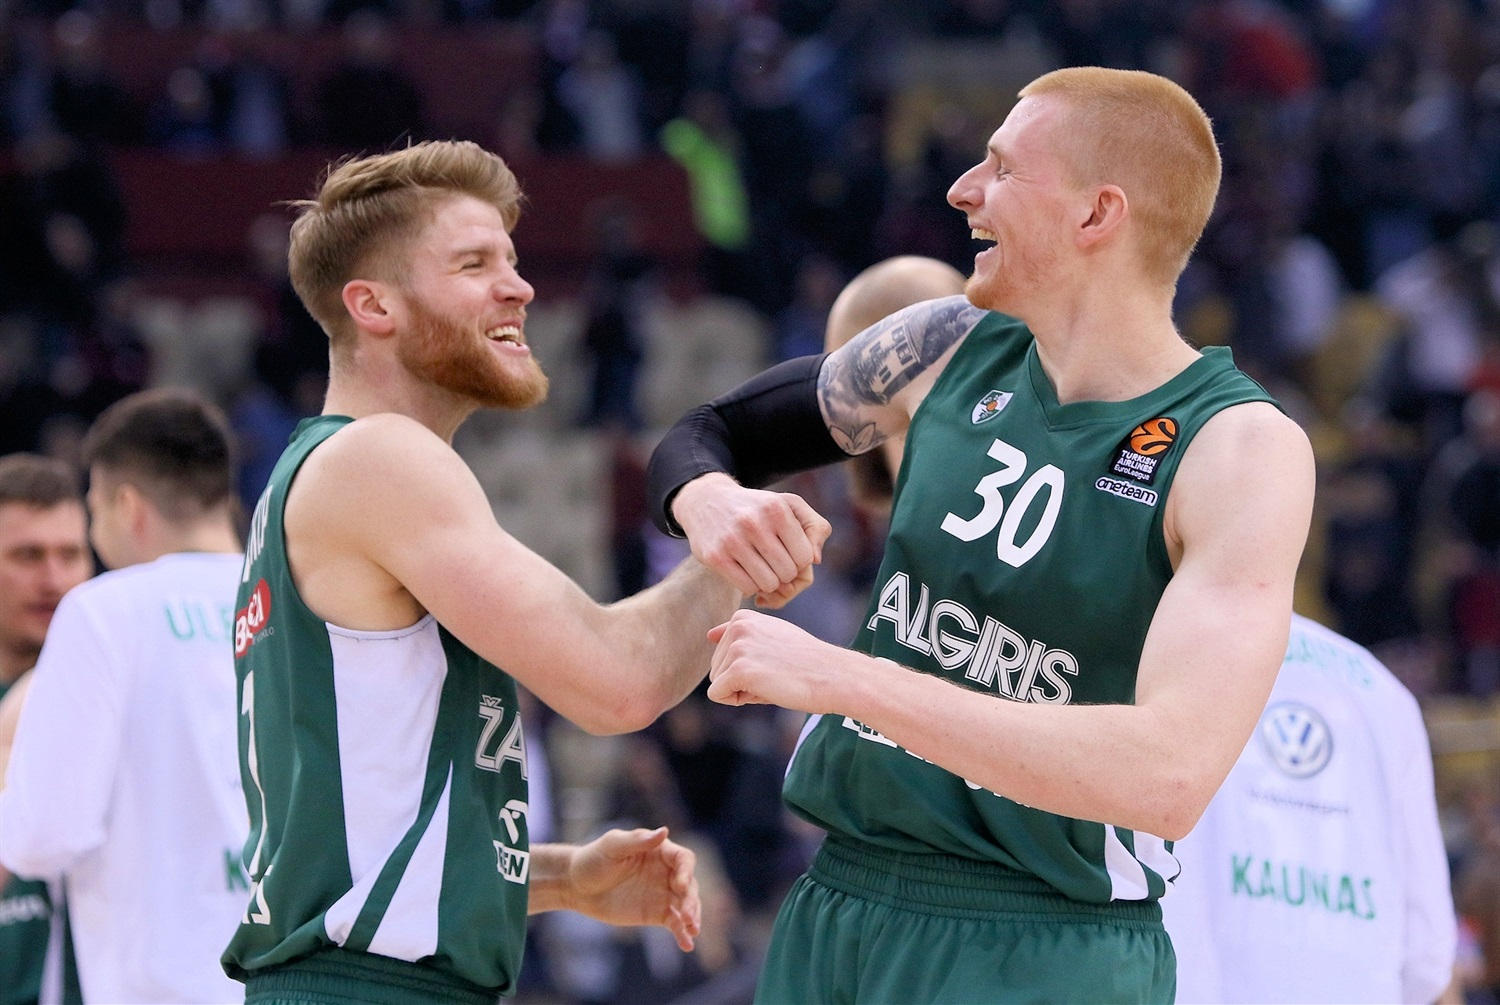 Thomas Walkup and Aaron White - Zalgiris Kaunas - EB18